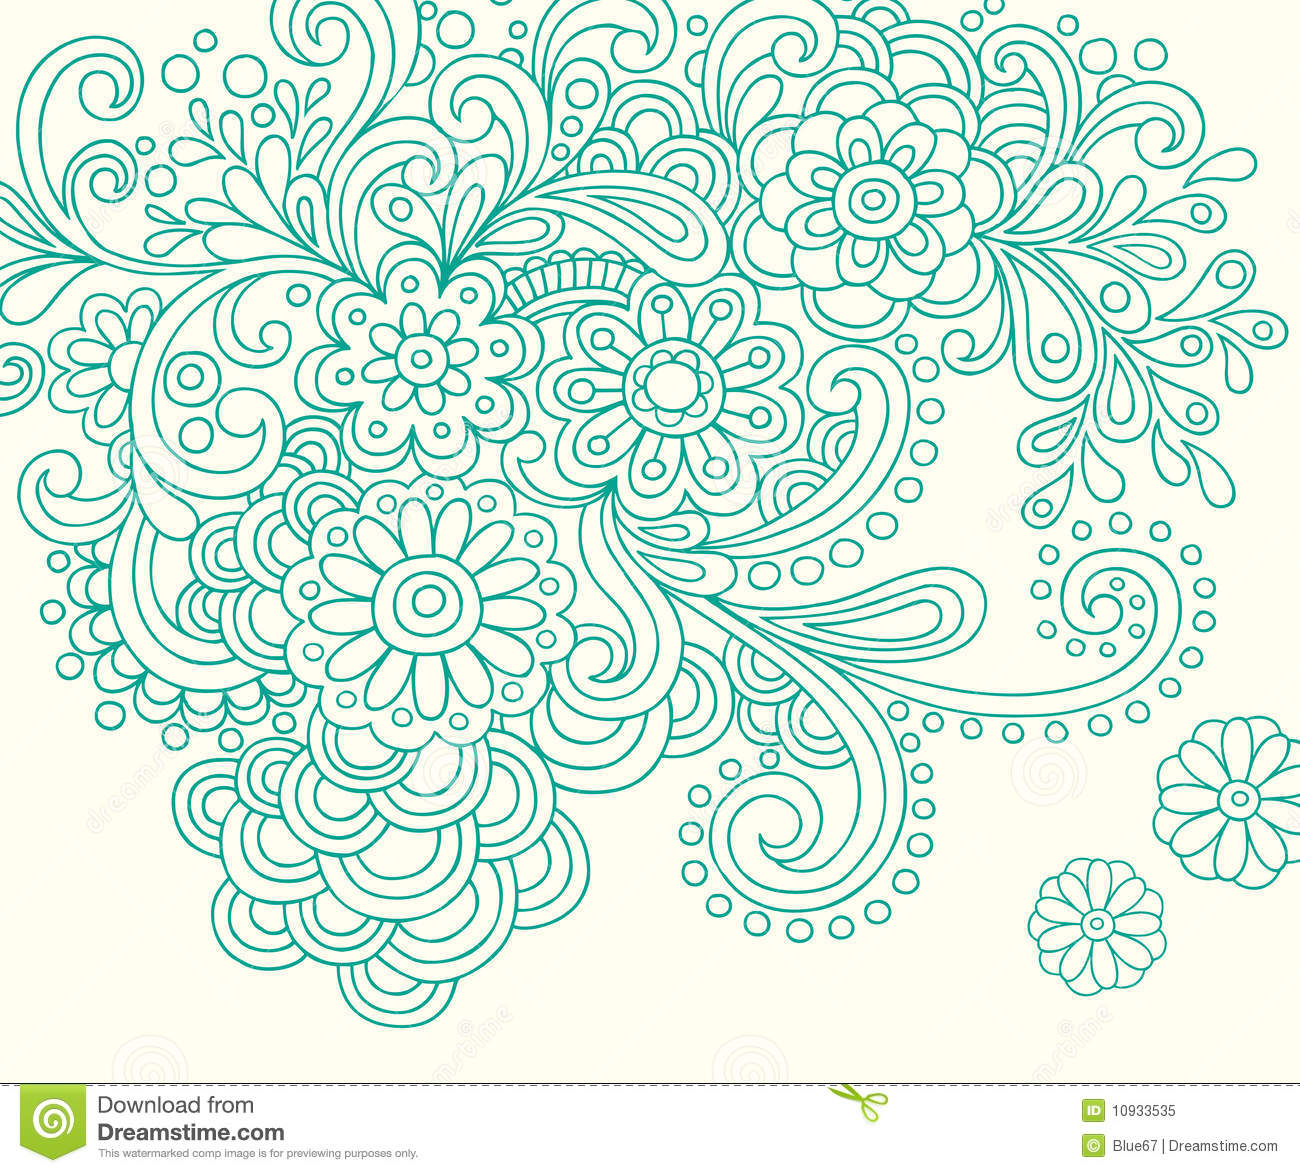 Doodle Henna Abstract Flowers Vector Stock Vector - Image